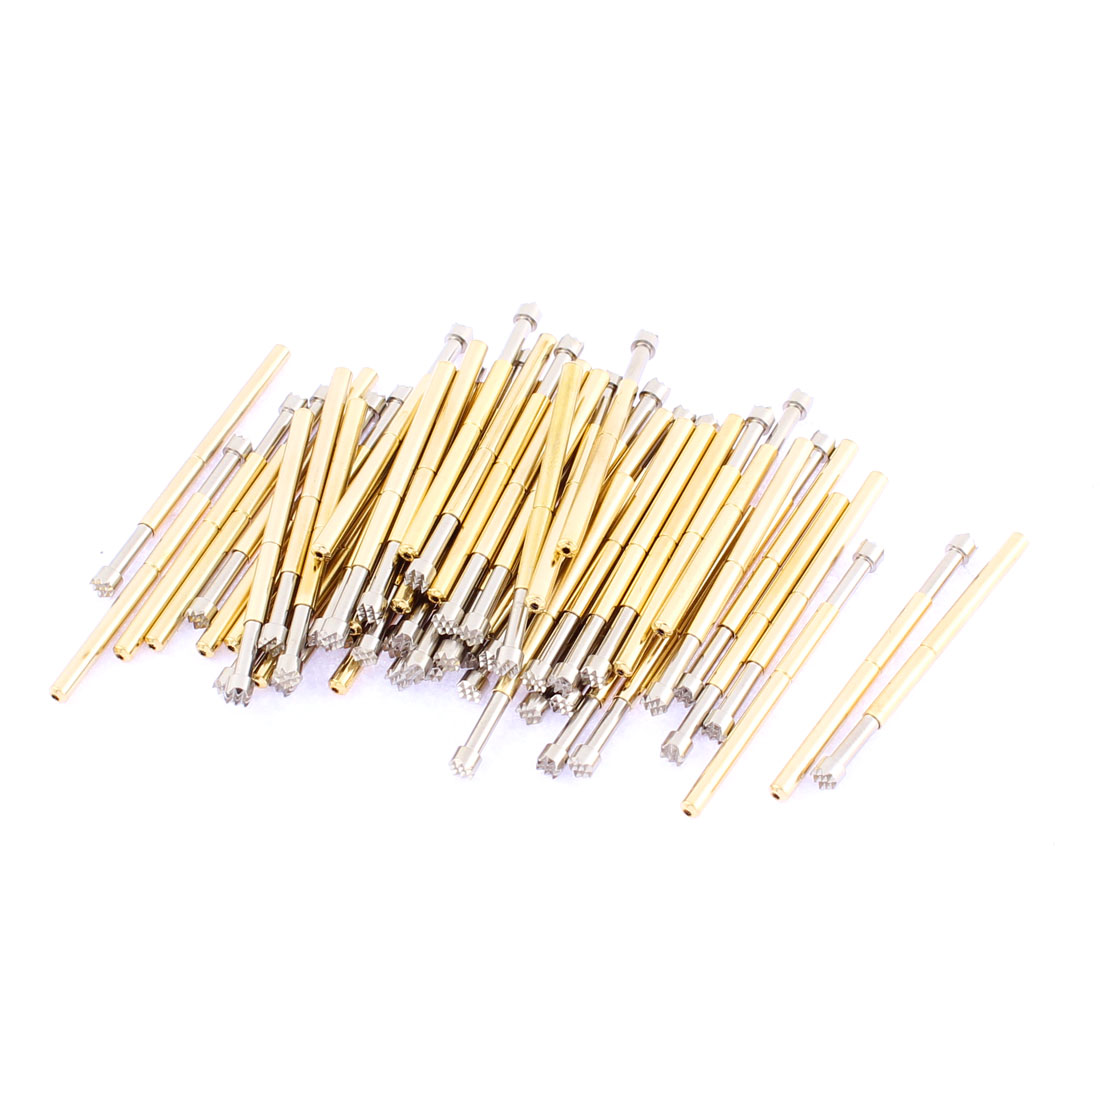 P125H 33mm Length Crown Tip Spring Loaded Contact Test Probe Pin Gold Tone 60Pcs